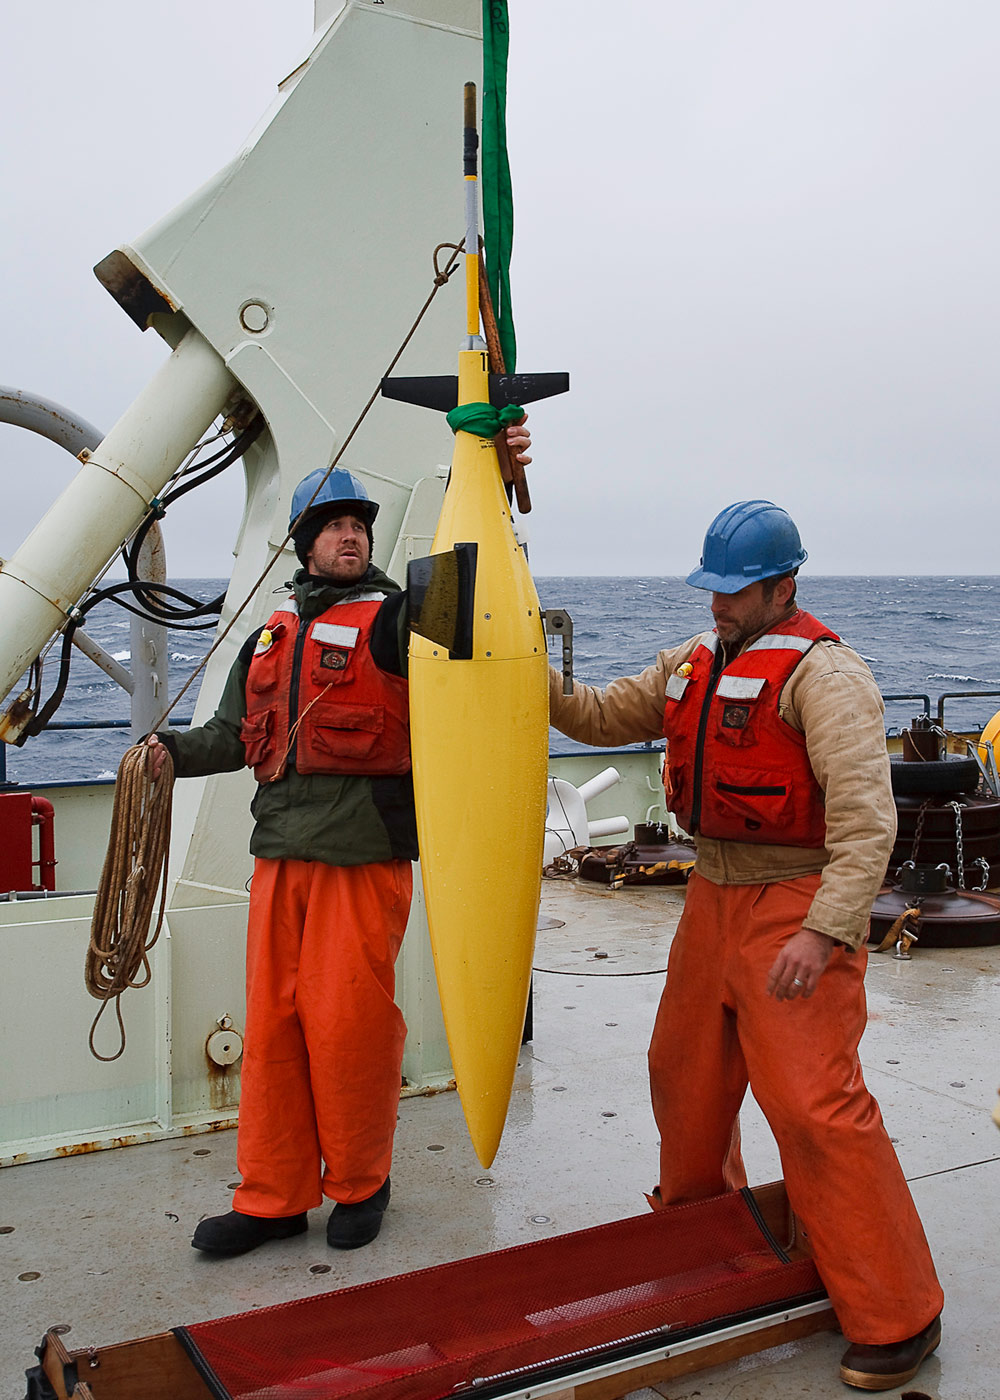 Two men in orange uniforms on boat deck guiding a hanging yellow torpedo-like instrument out of its case